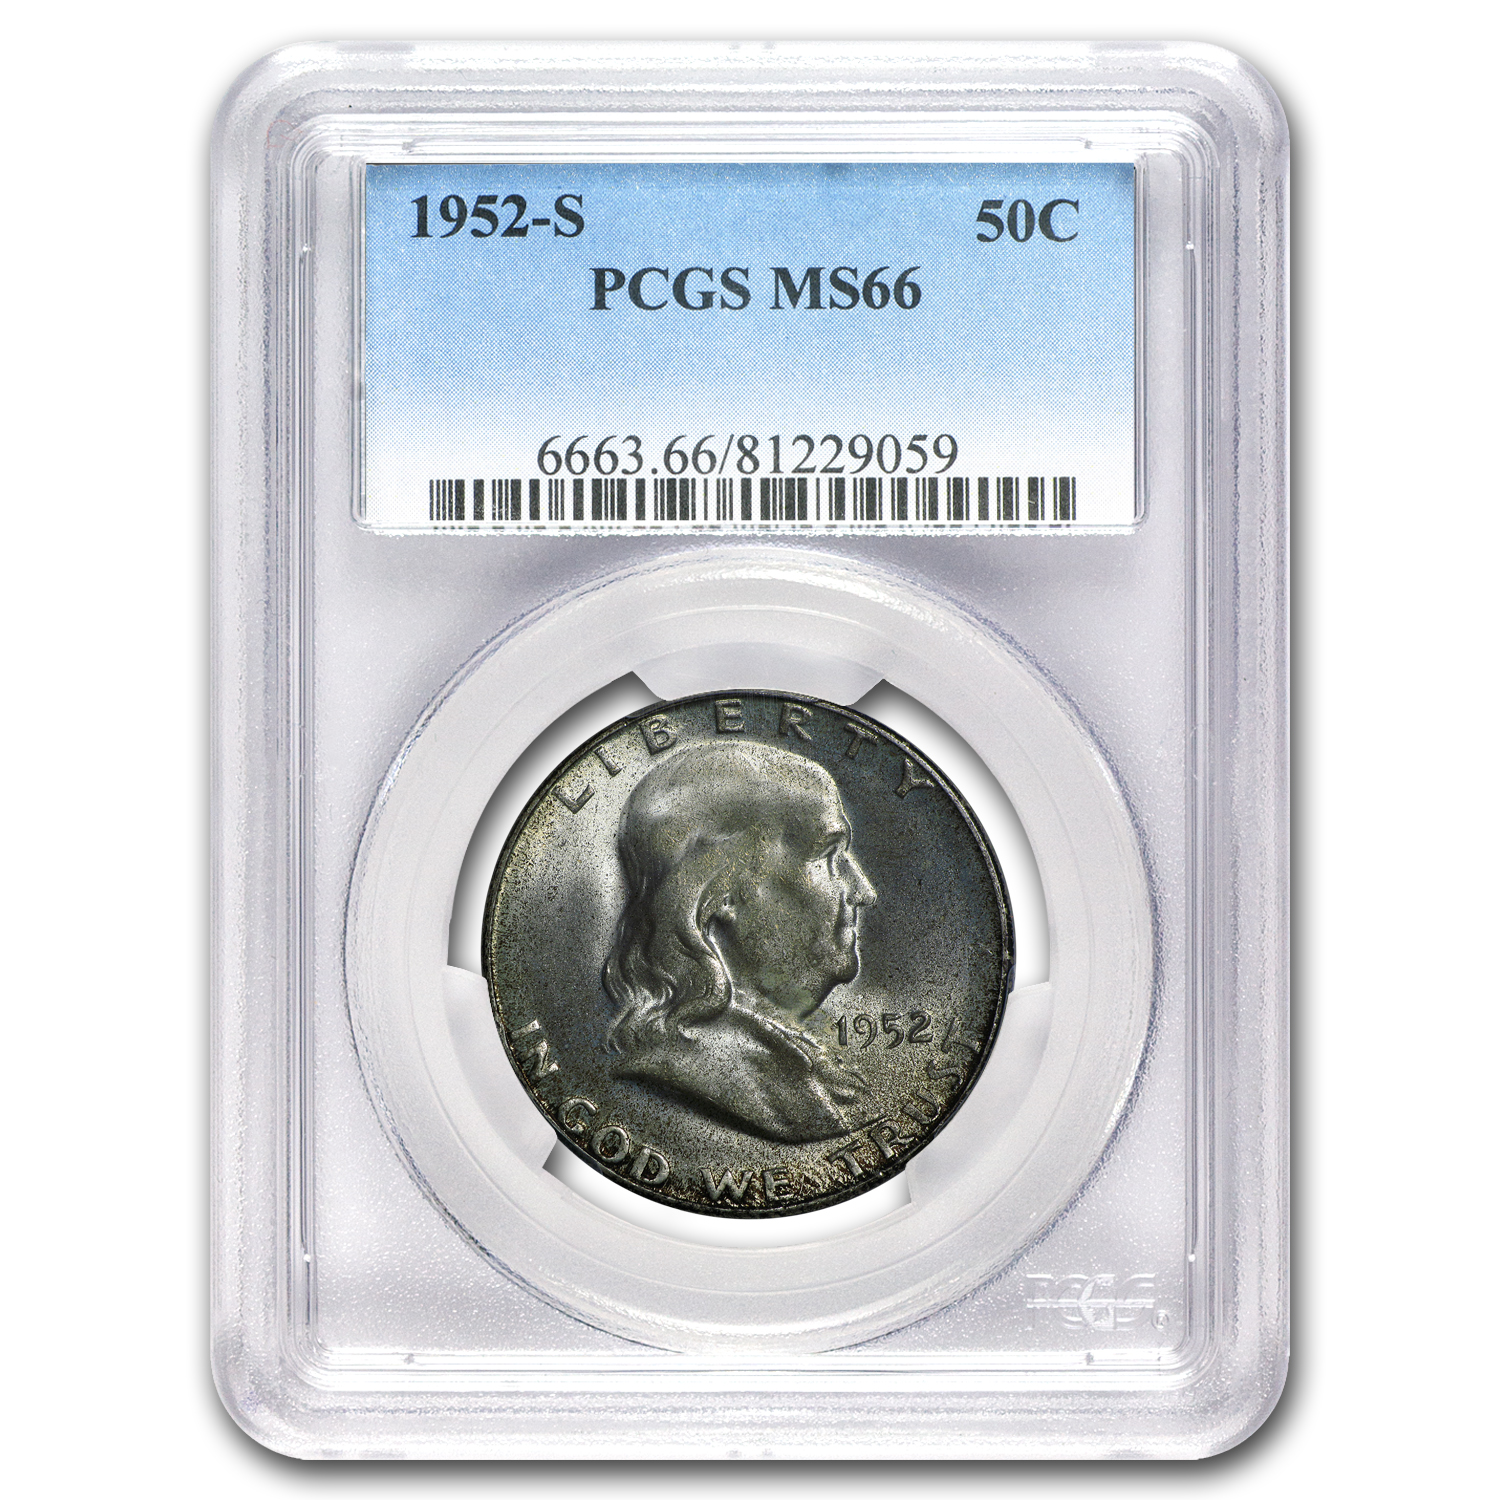 1952-S Franklin Half Dollar MS-66 PCGS (Toned)